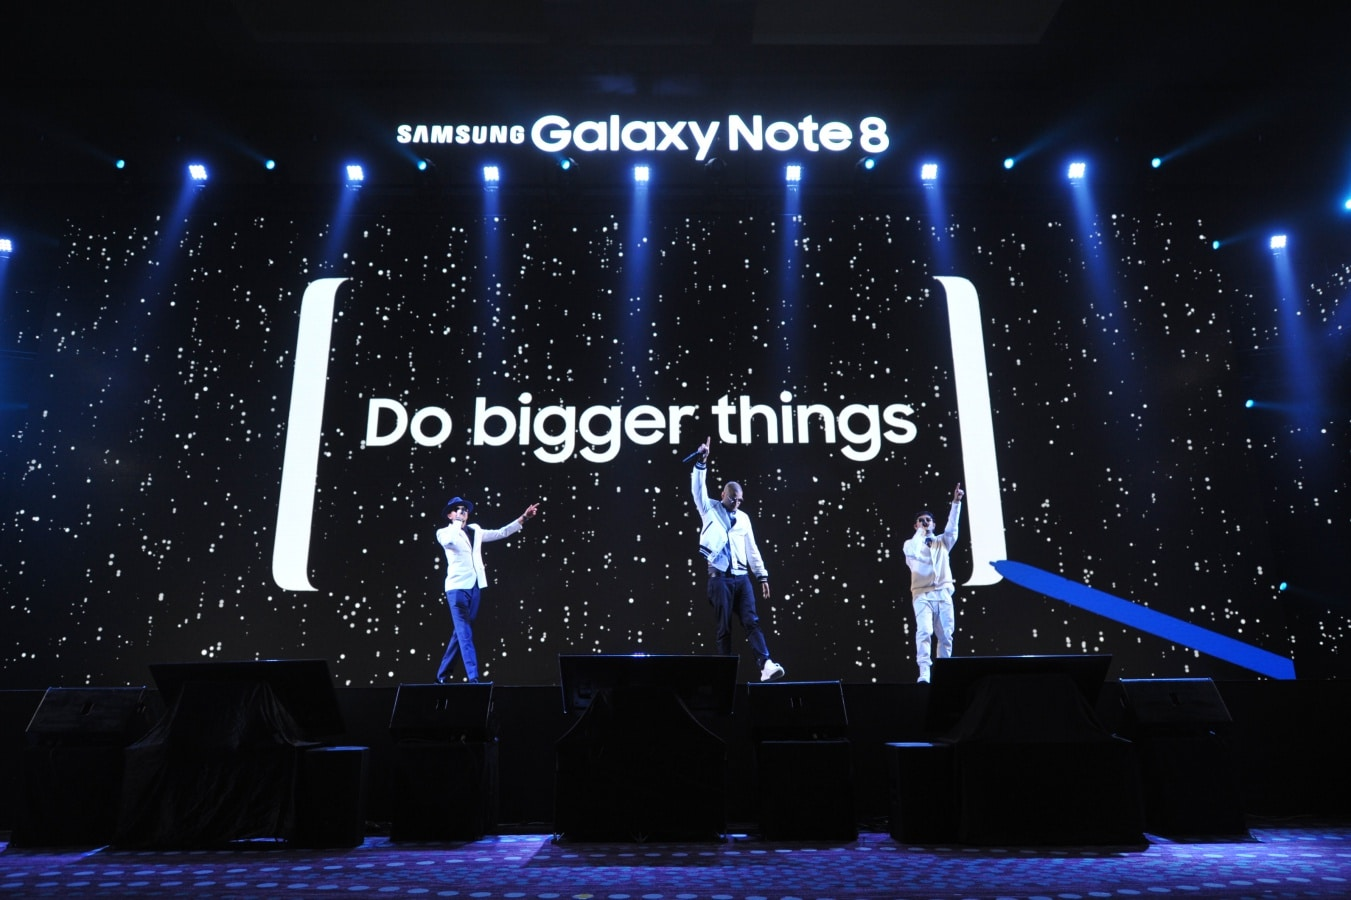 samsung-galaxy-note-8-event-6